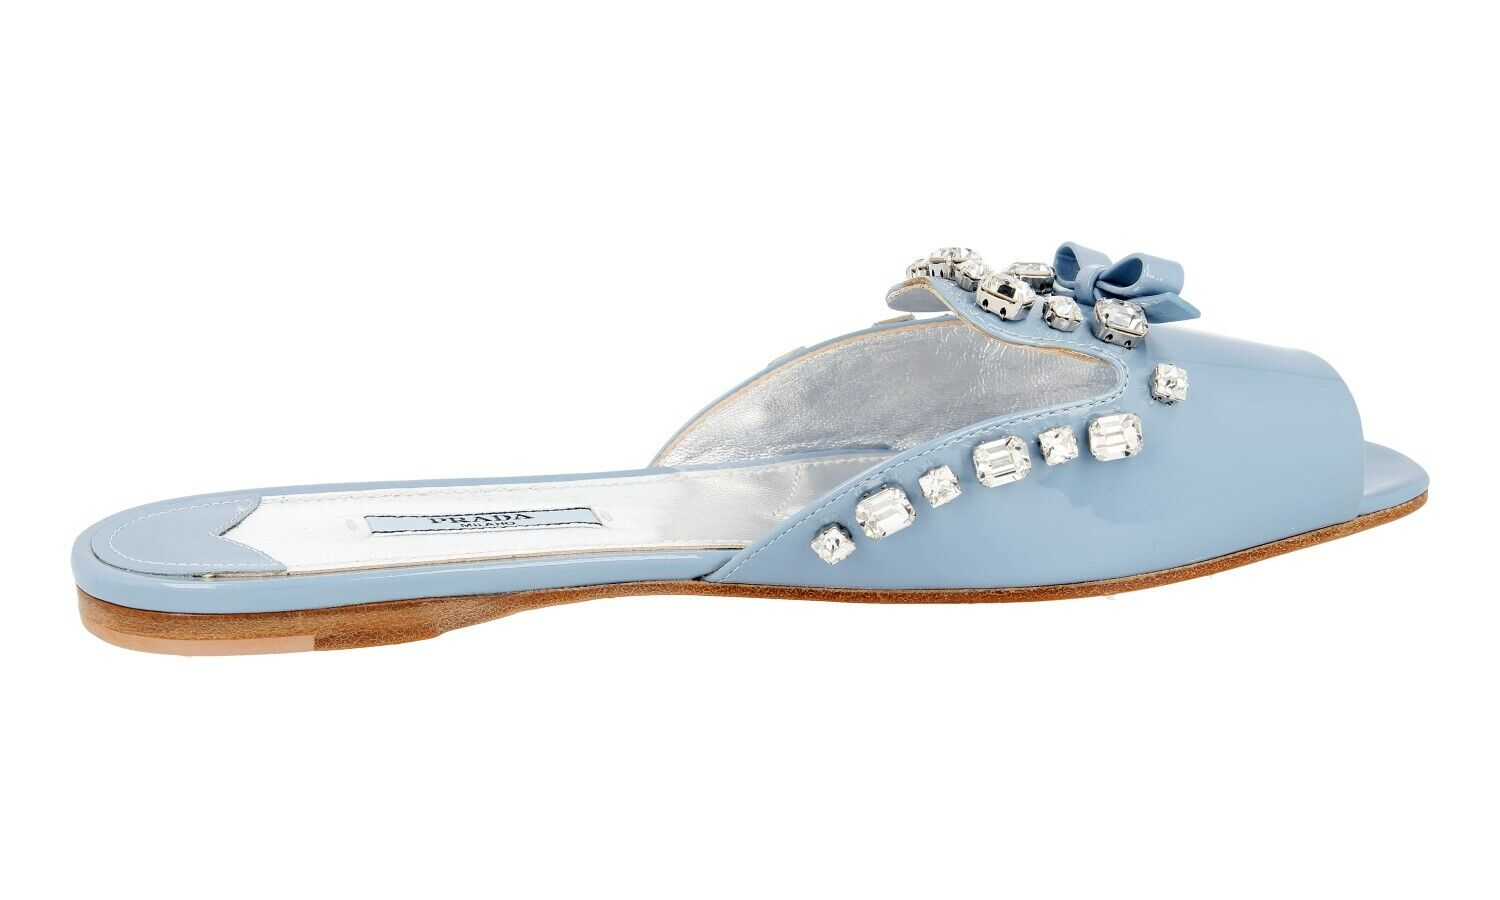 AUTH AUTH AUTH LUXURY PRADA SANDALS SHOES 1XX182 LIGHT blueE NEW 39,5 40 UK 6.5 0e906e